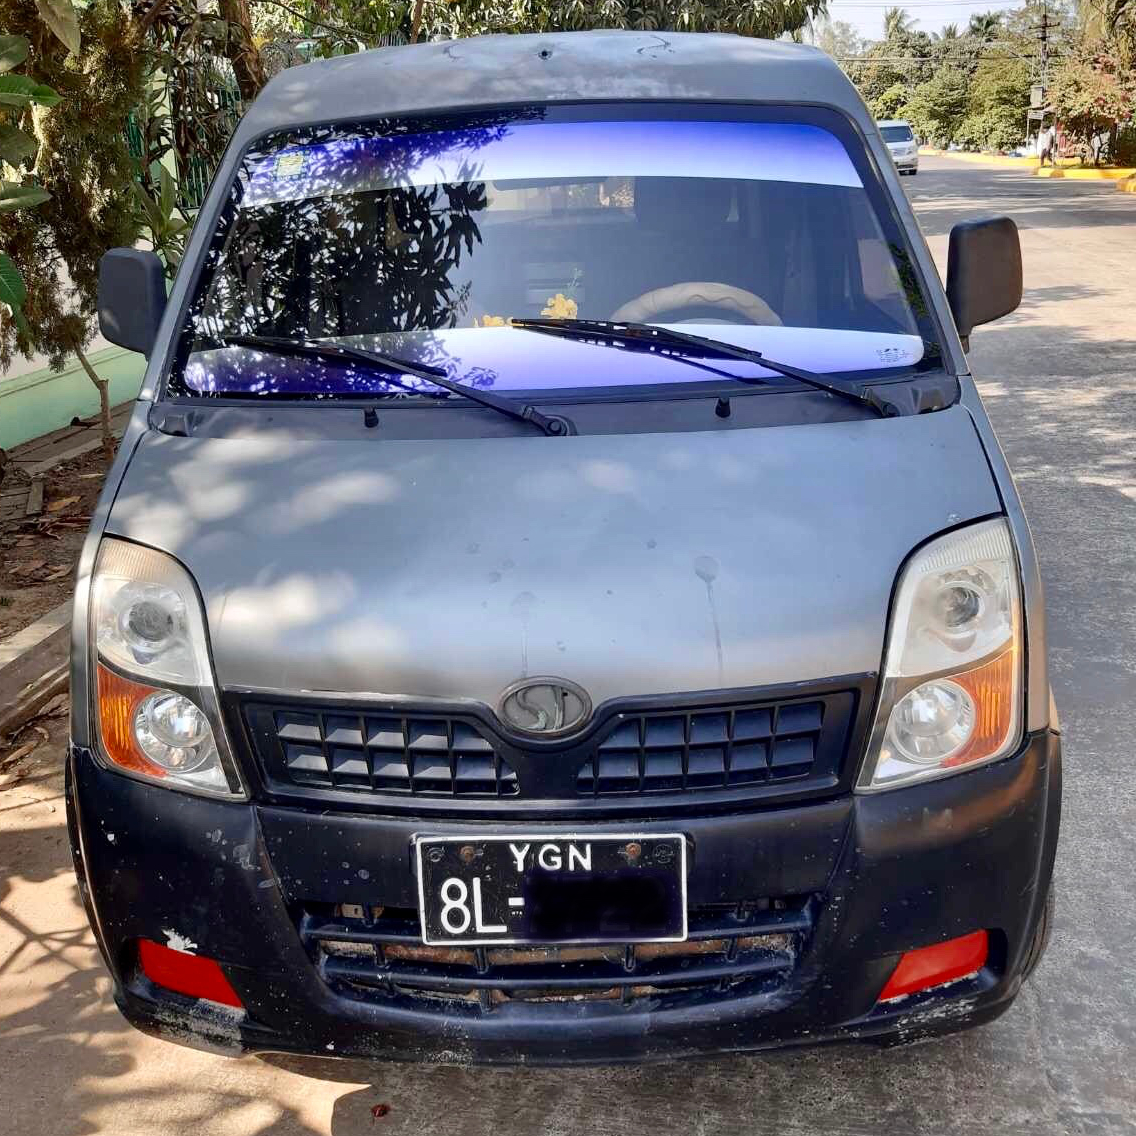 Hyundai Other 2014  Image, ဗန် classified, Myanmar marketplace, Myanmarkt